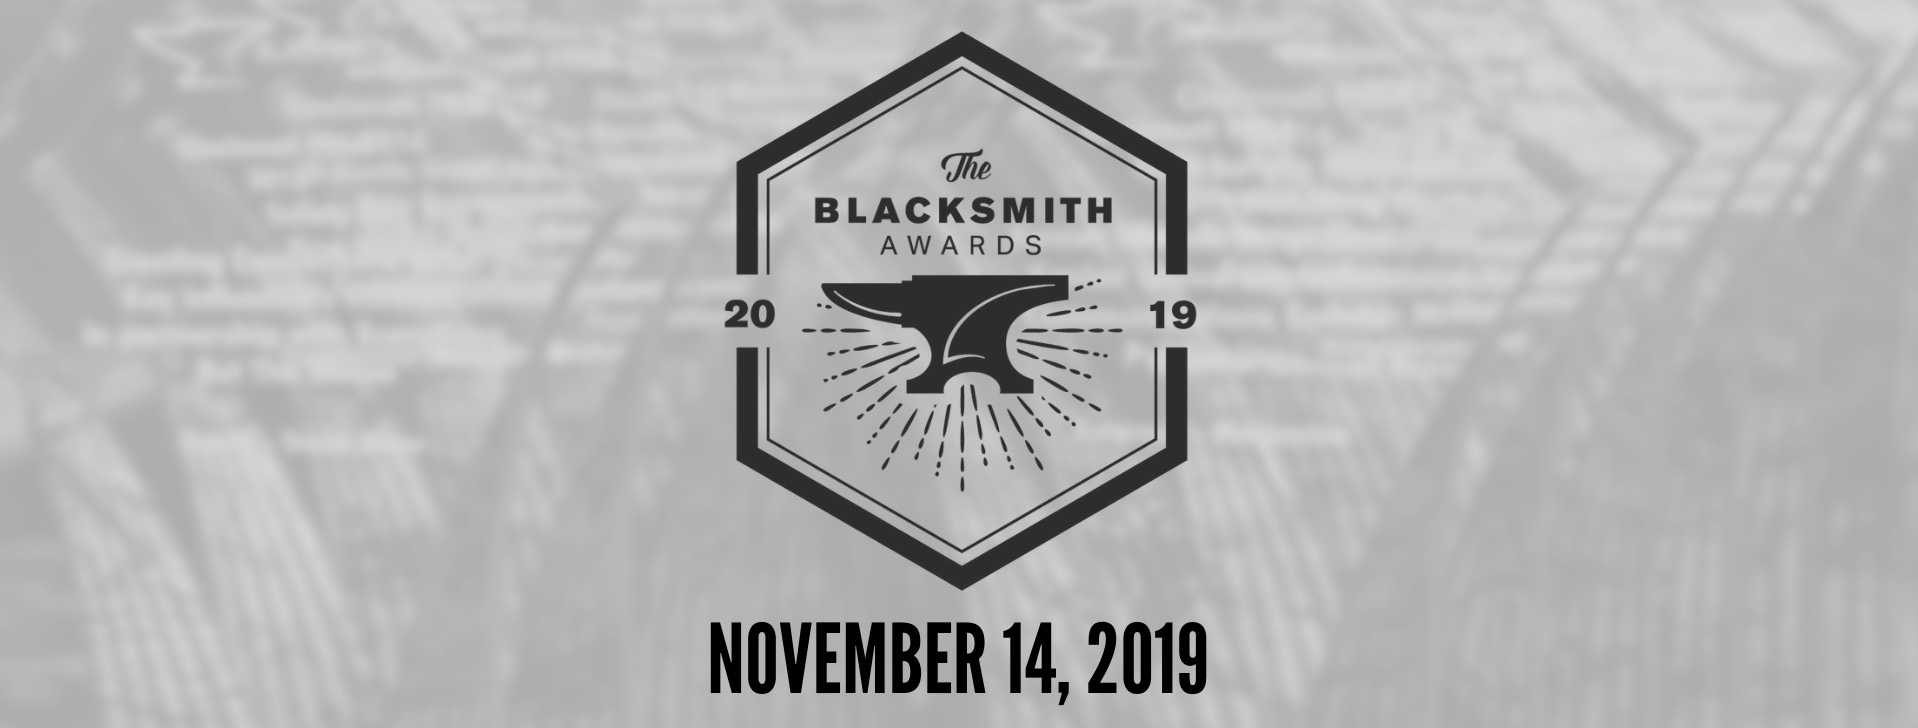 blacksmith save the date_SS.png